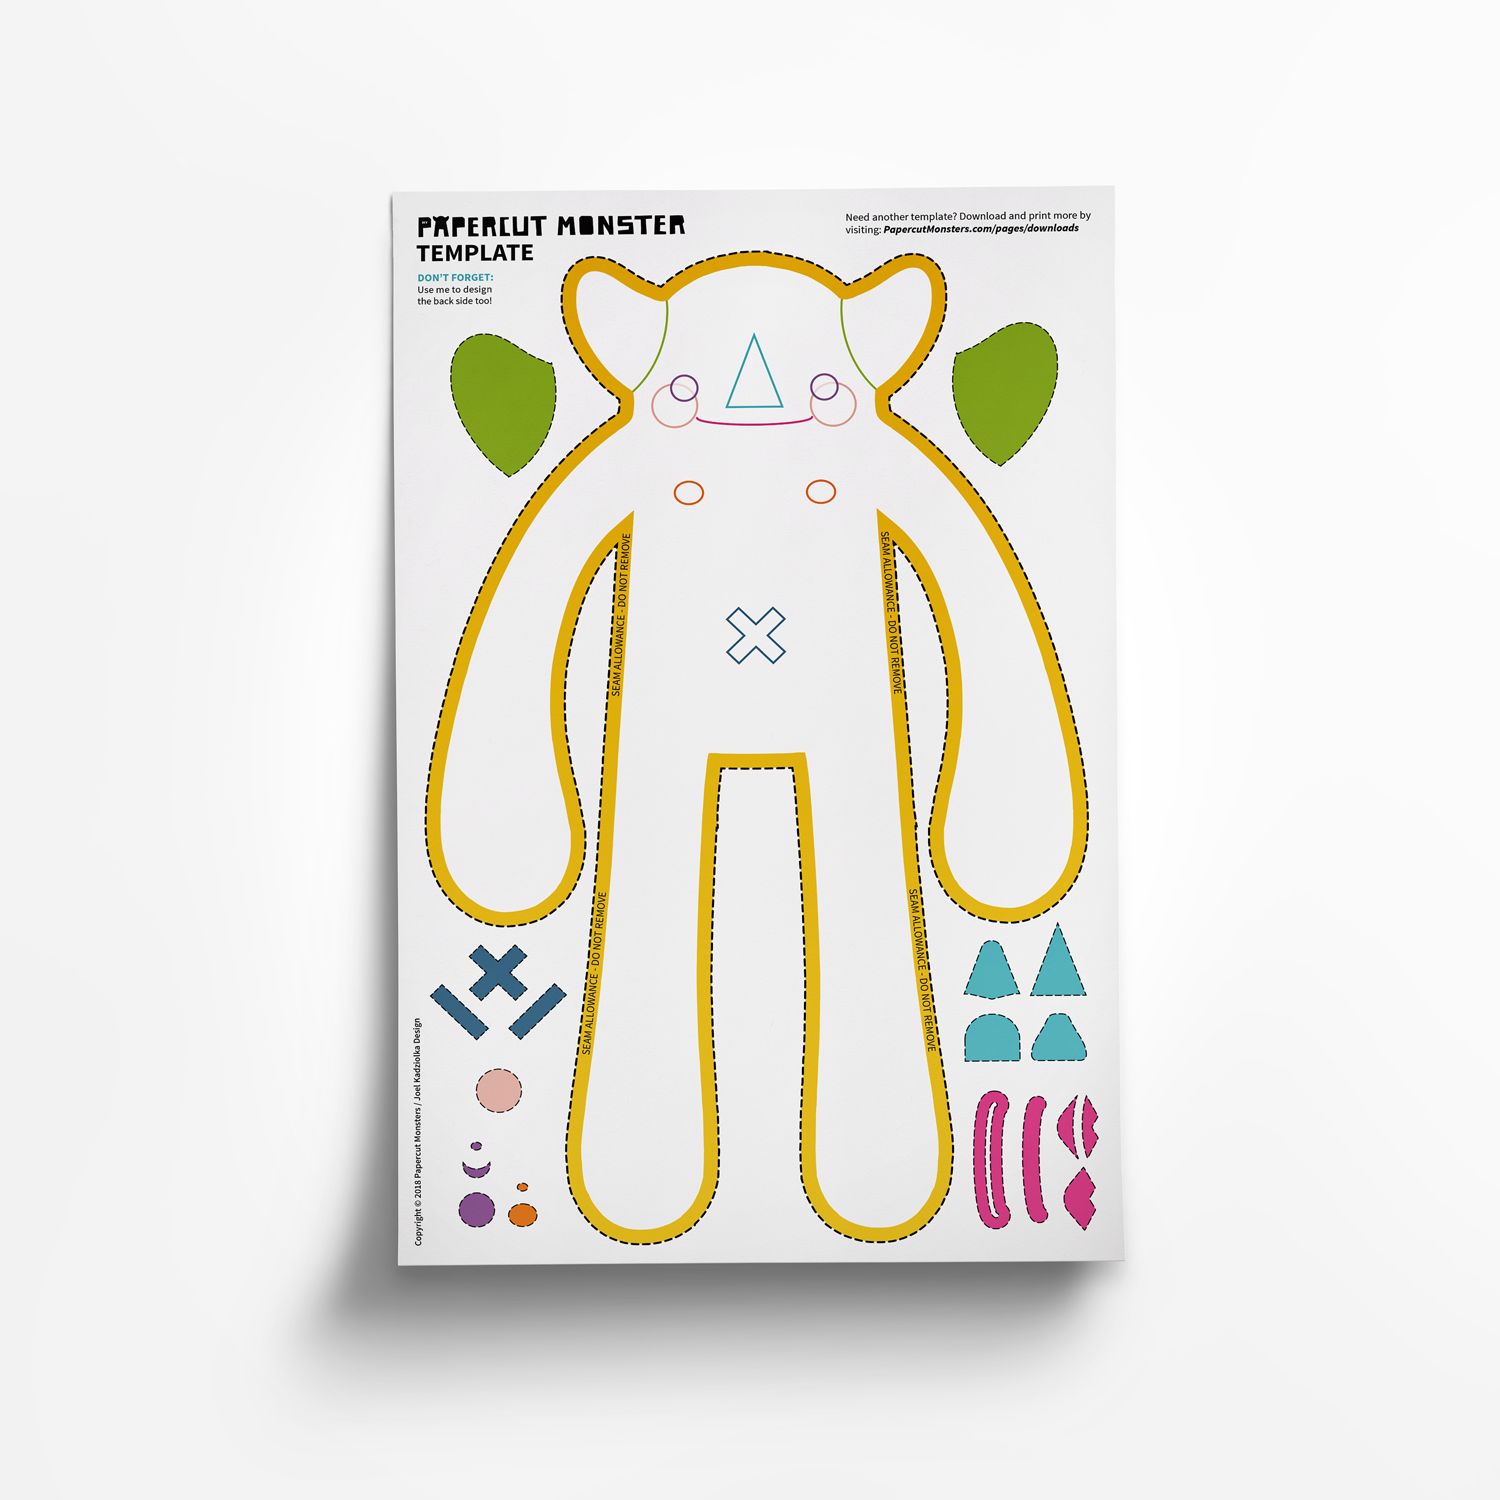 Free Collage Template - Download and Print - Papercut Monsters - Handmade Stuffed Toy